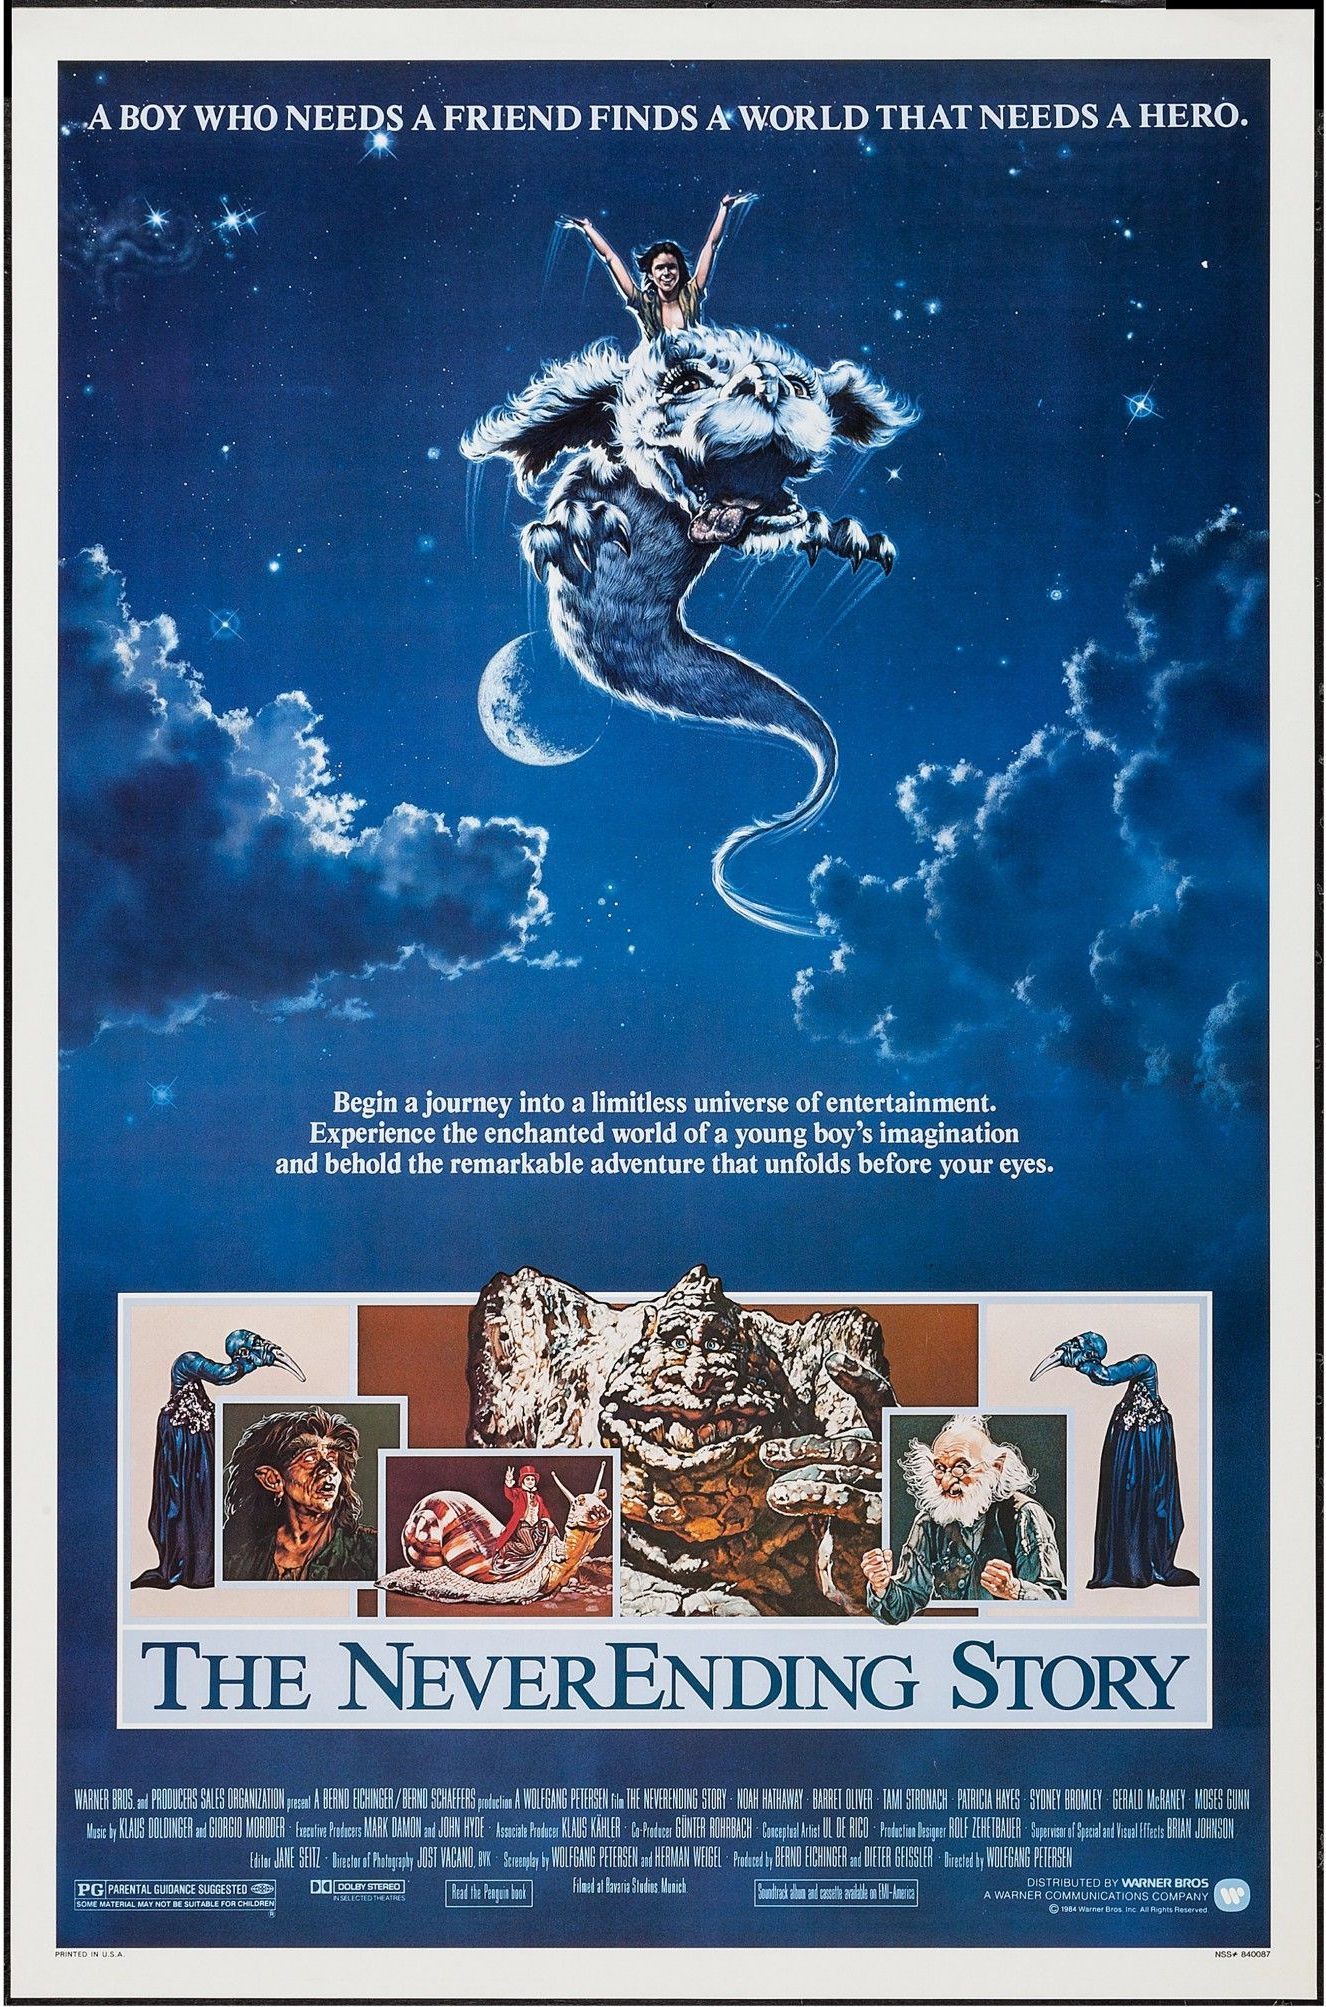 Preteen Existentialism: Two Boys, One Horse and A Neverending Story